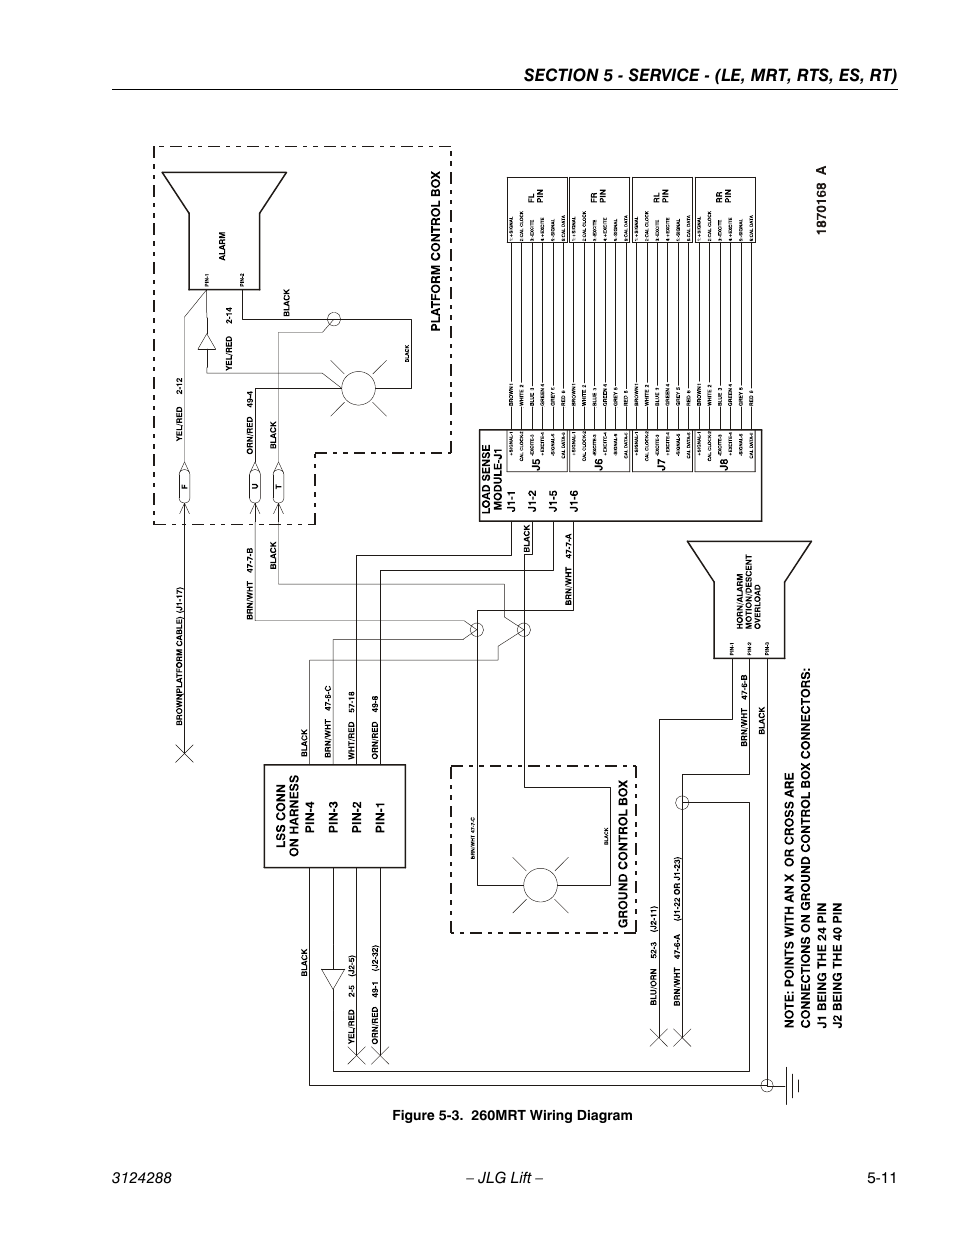 260mrt wiring diagram   78